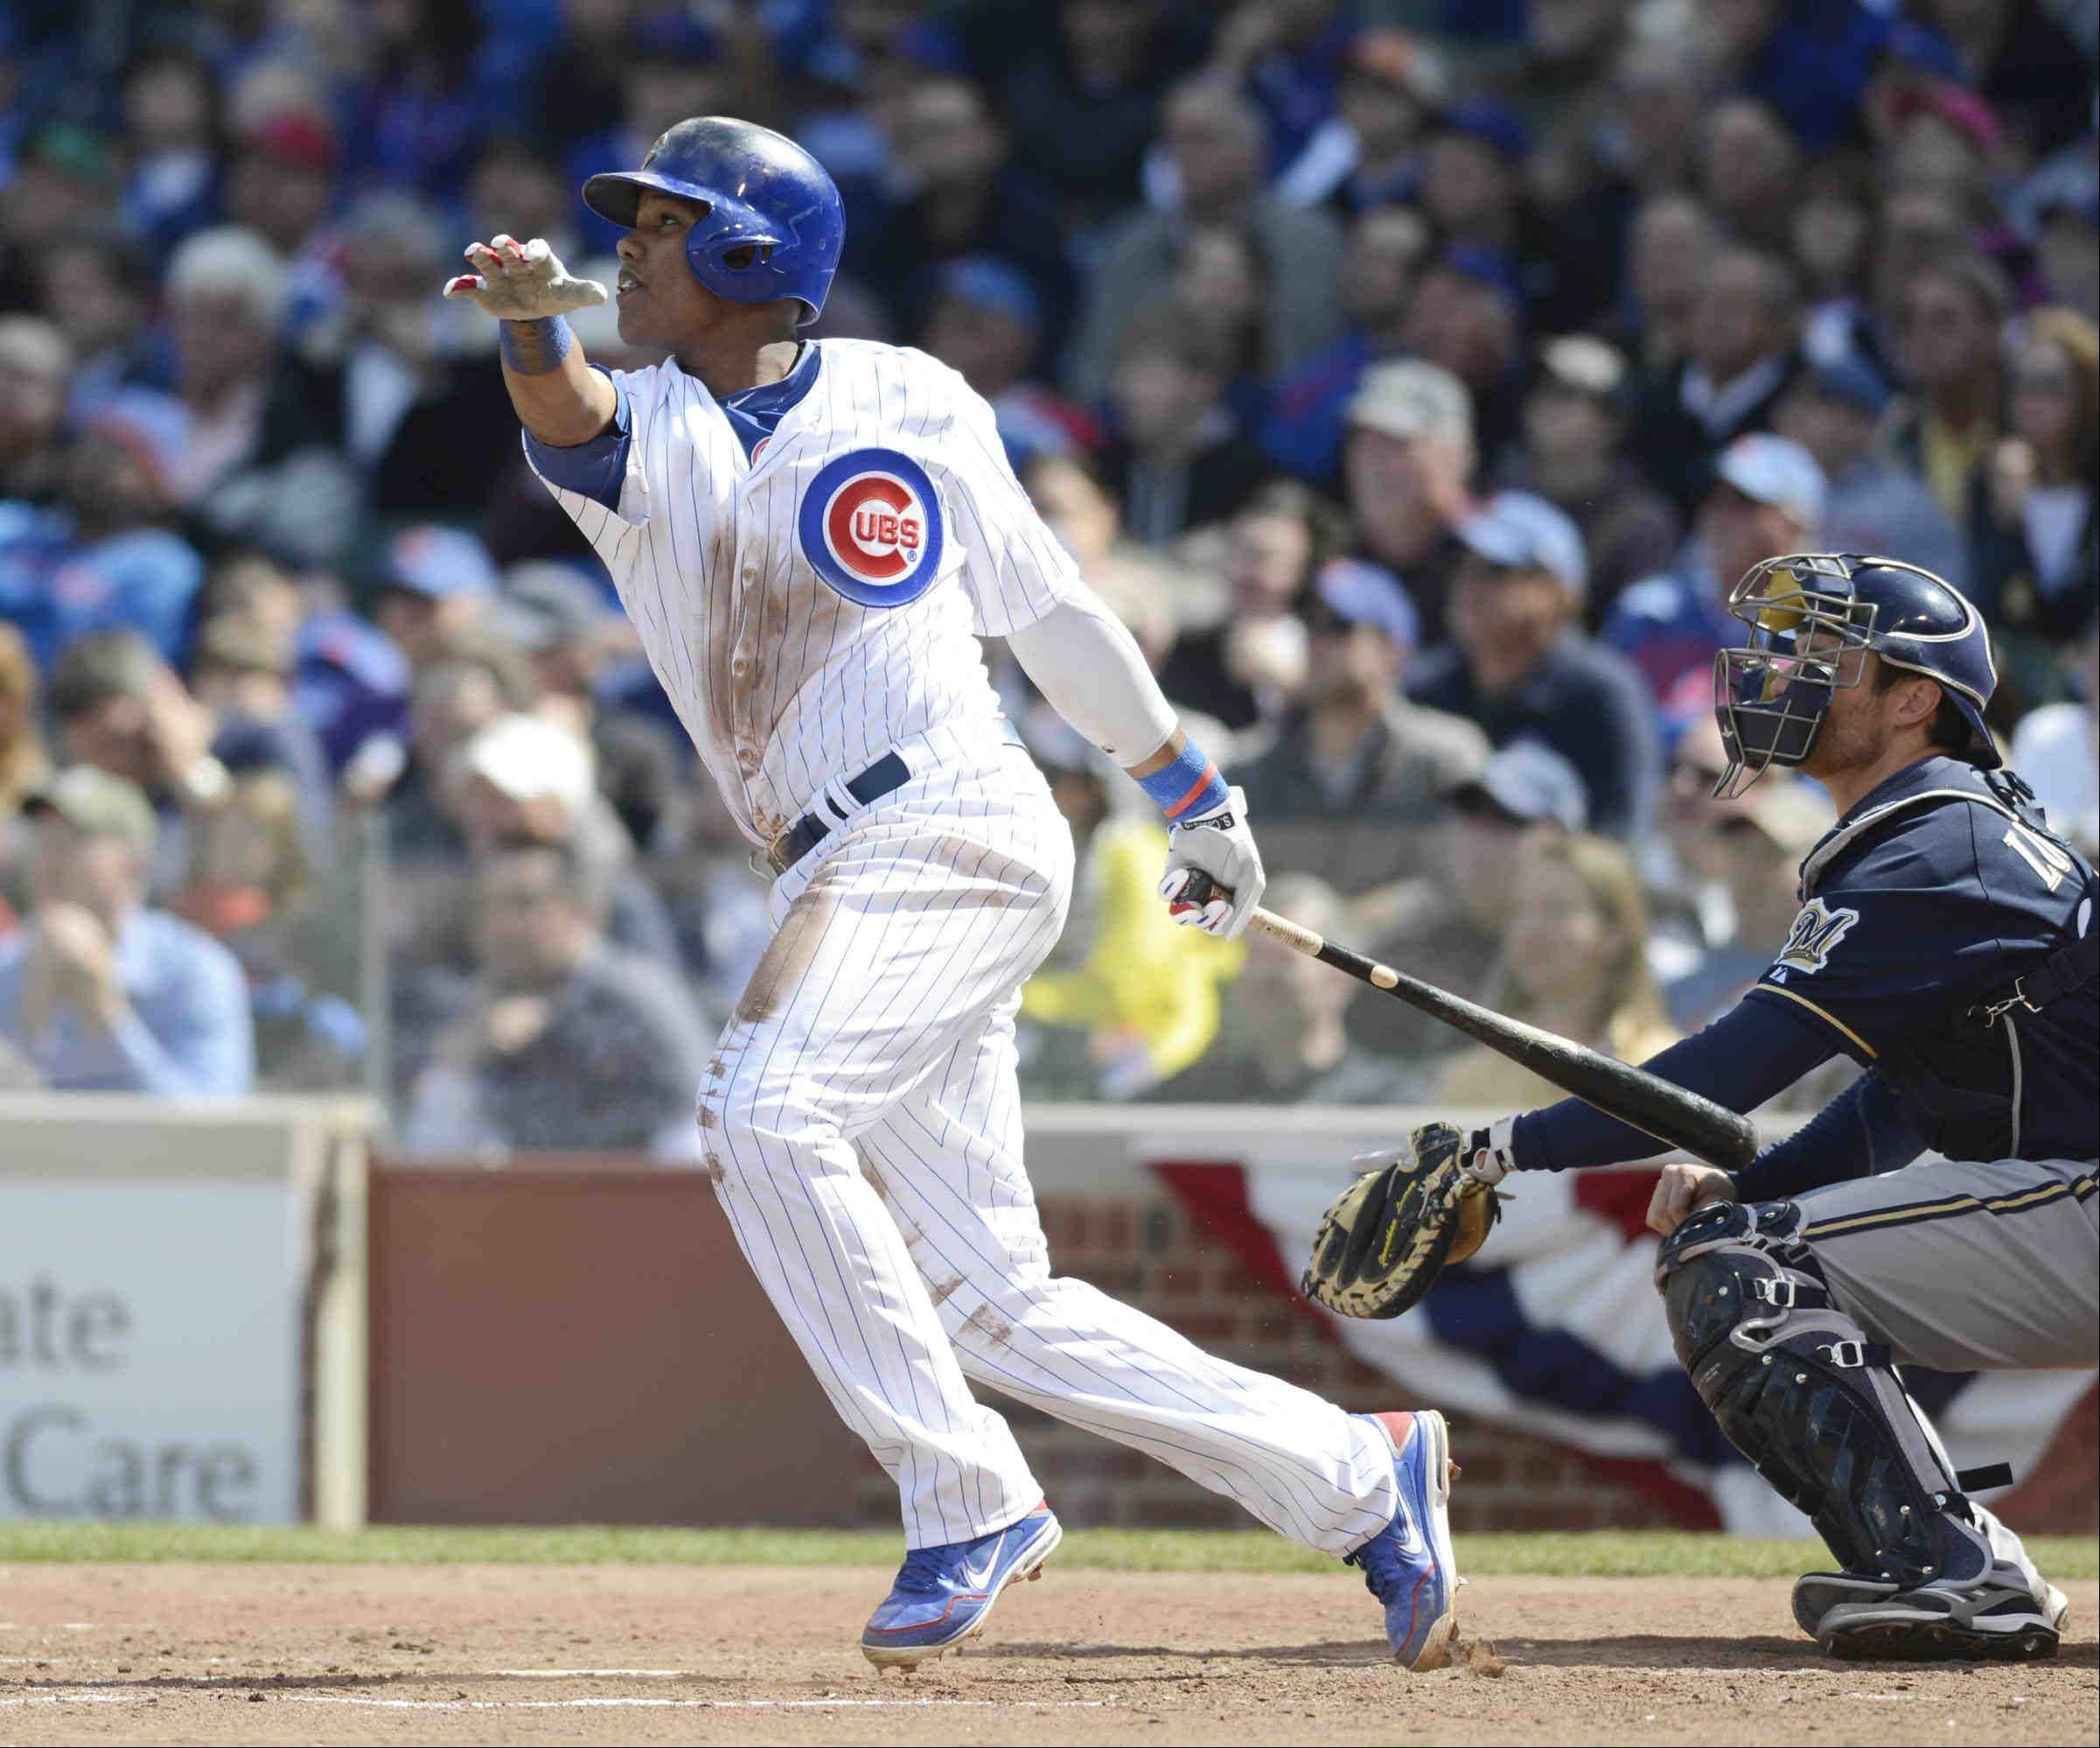 Cubs shortstop Starlin Castro hits a triple with two outs in Monday's third inning against the Milwaukee Brewers at Wrigley Field. Teammate Anthony Rizzo grounded out to end the inning, stranding Castro at third.